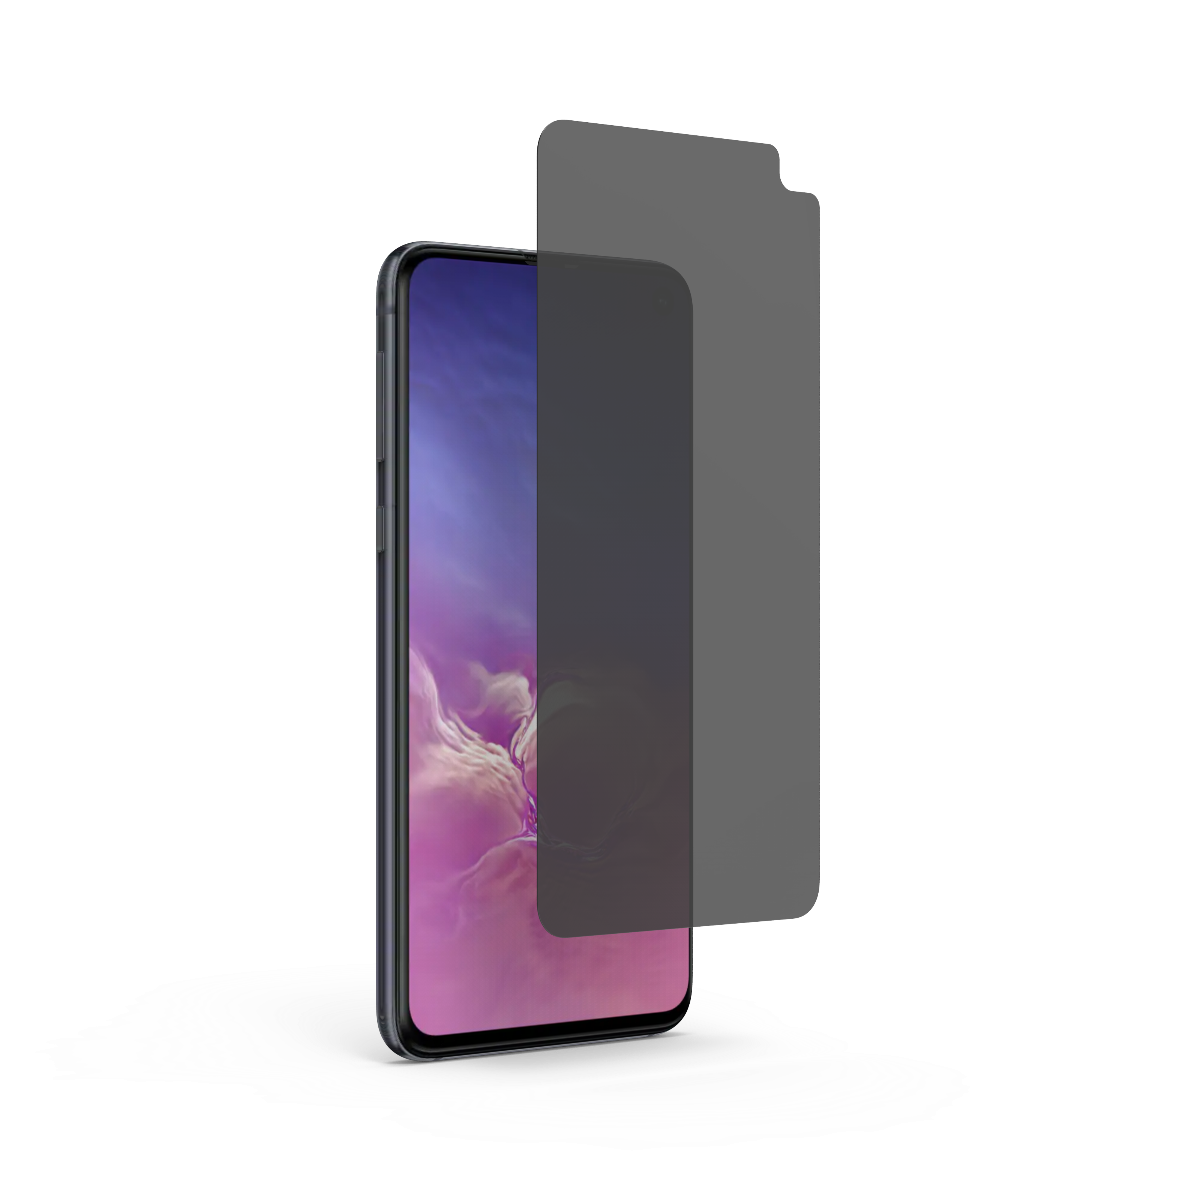 Samsung Galaxy S10e 2-Way Privacy High-Definition Glass Screen Protector with Alignment Tray